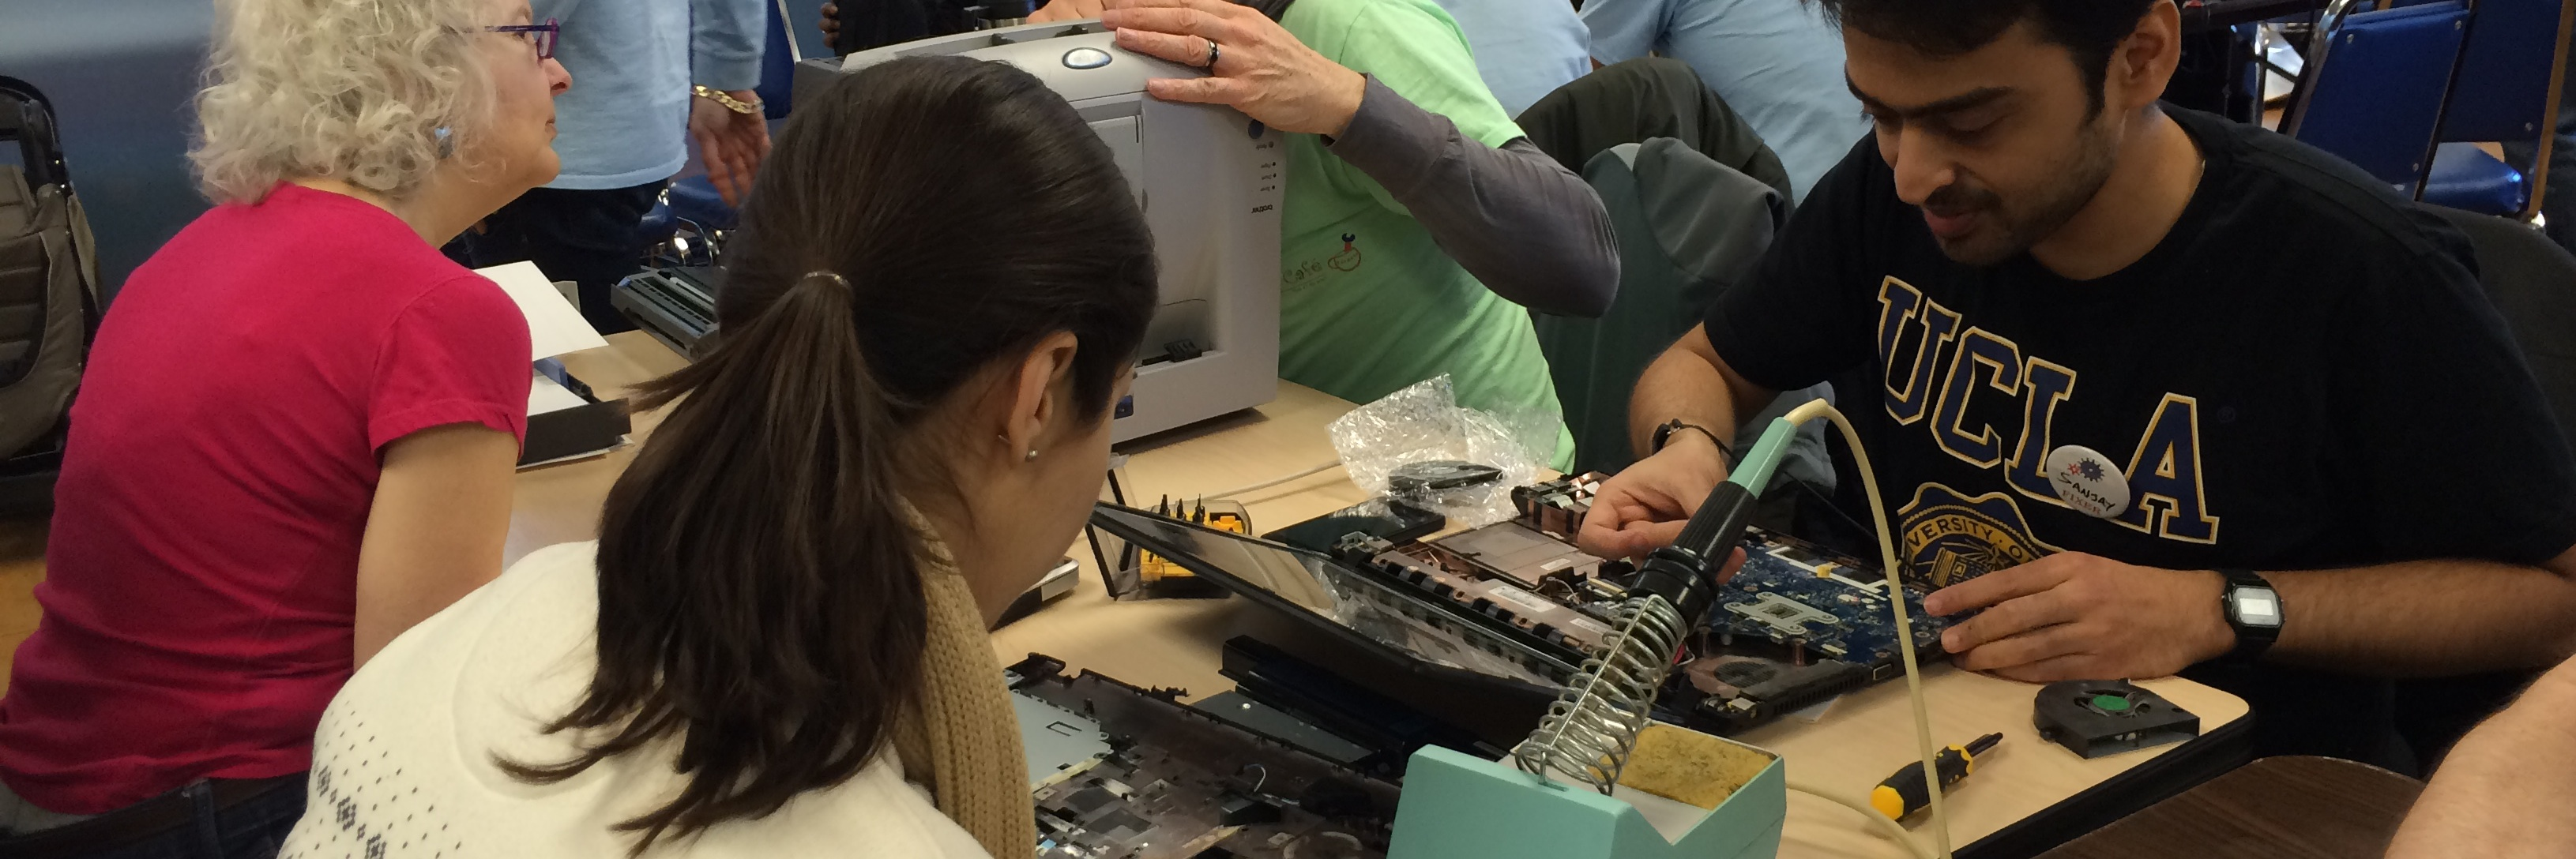 How can learn to repair appliances